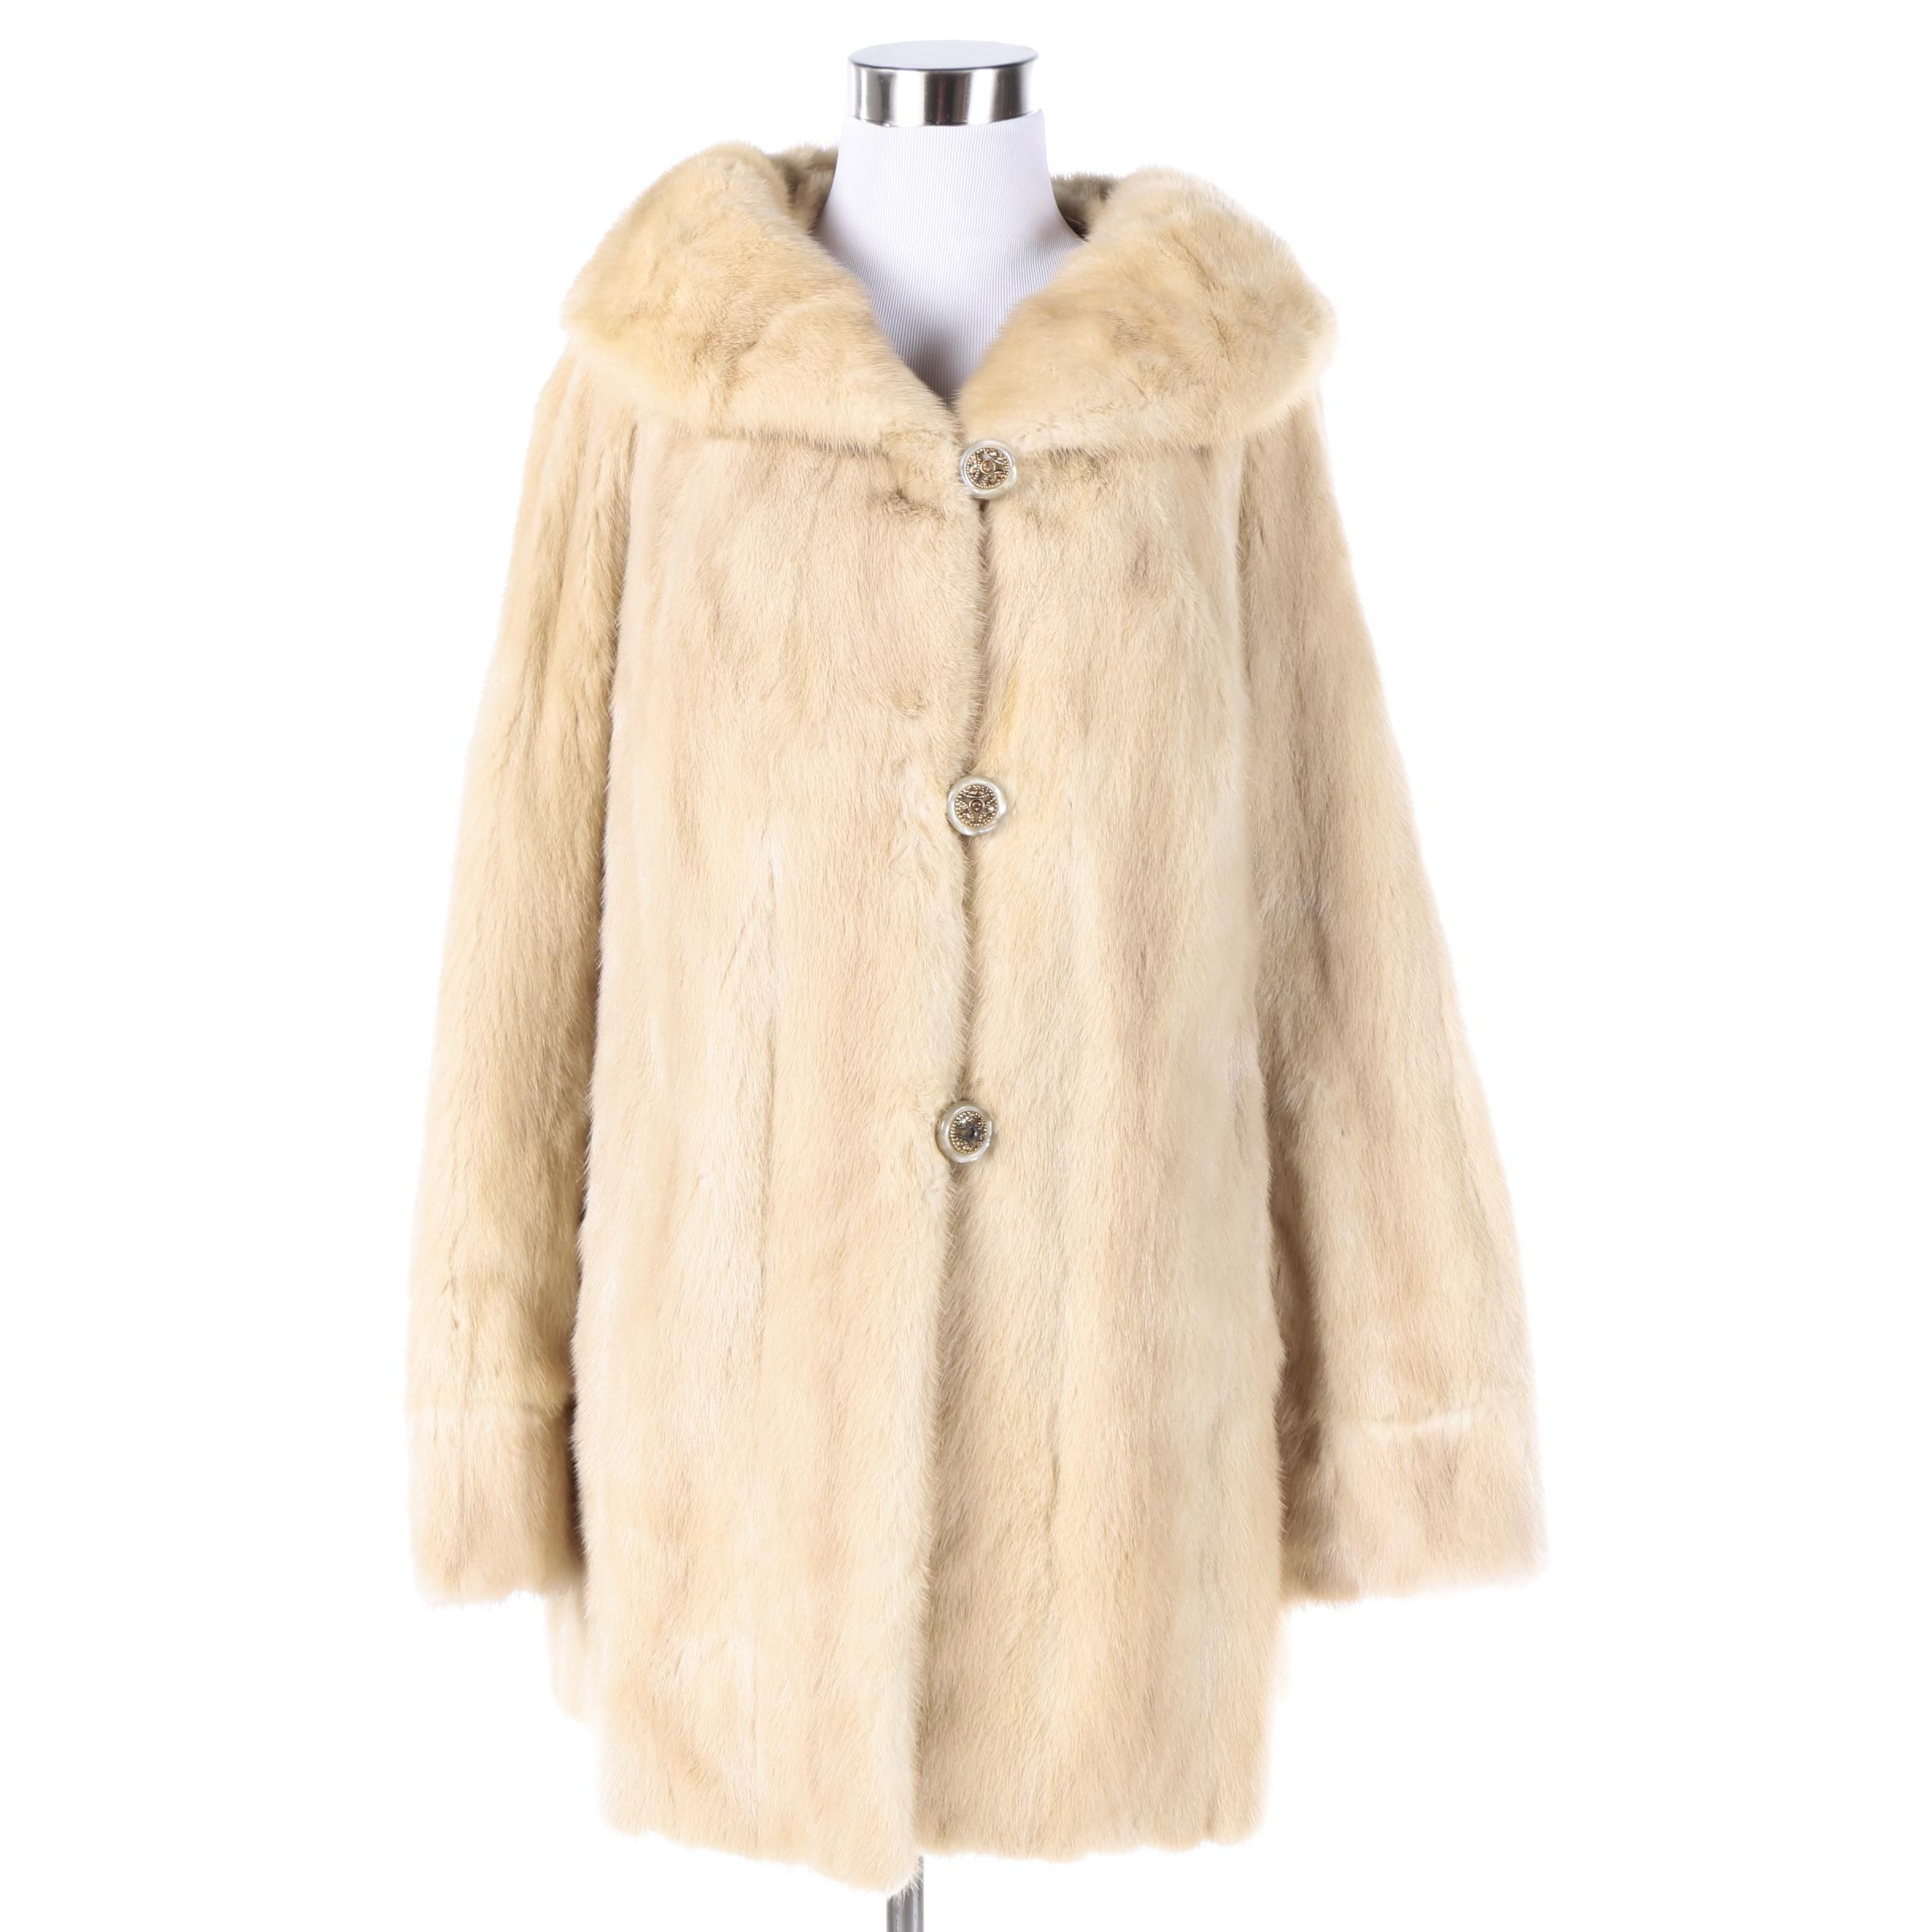 Vintage Bloom Furs Blonde Mink Fur Coat